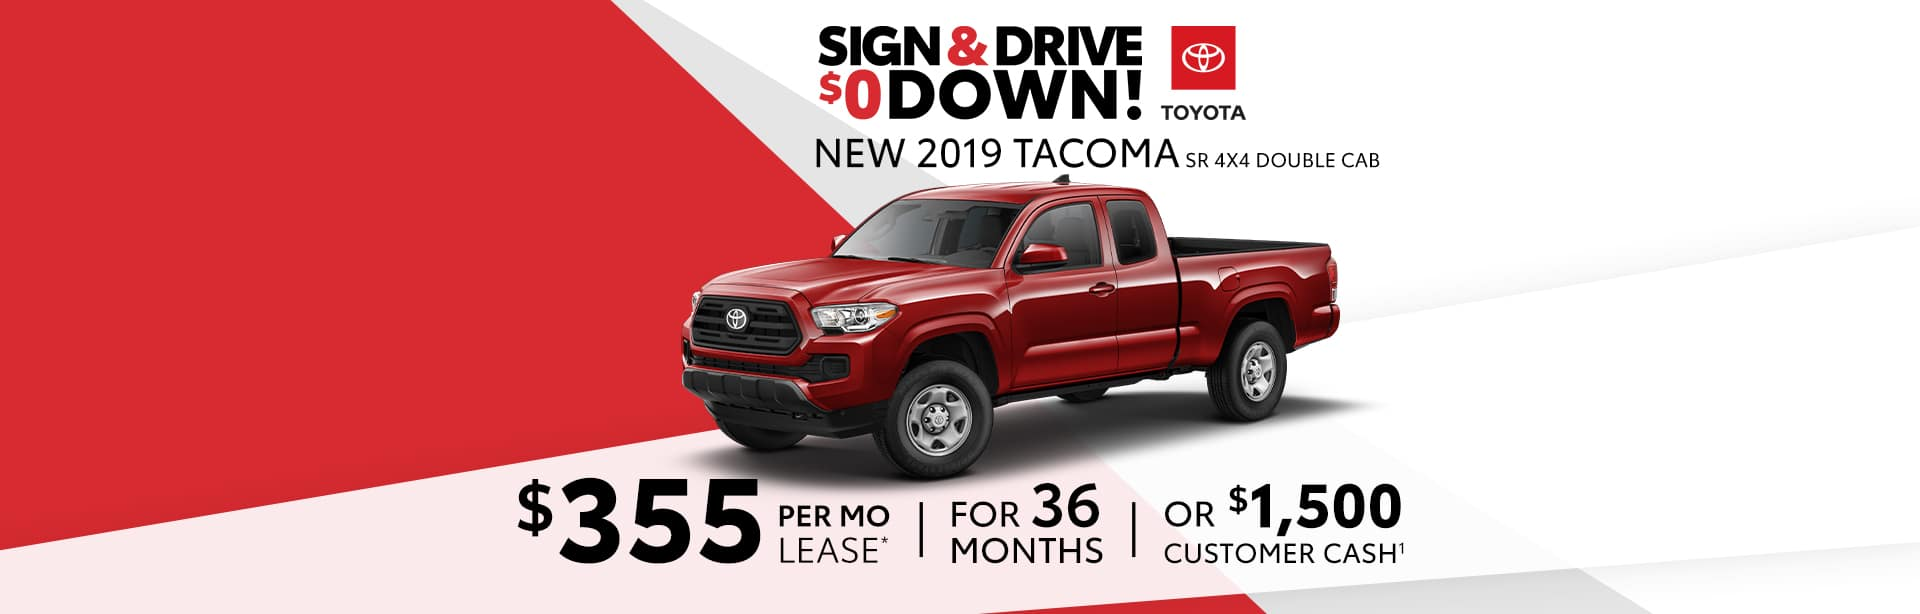 Lease a Toyota Tacoma for $299 a month near Avon, Indiana.